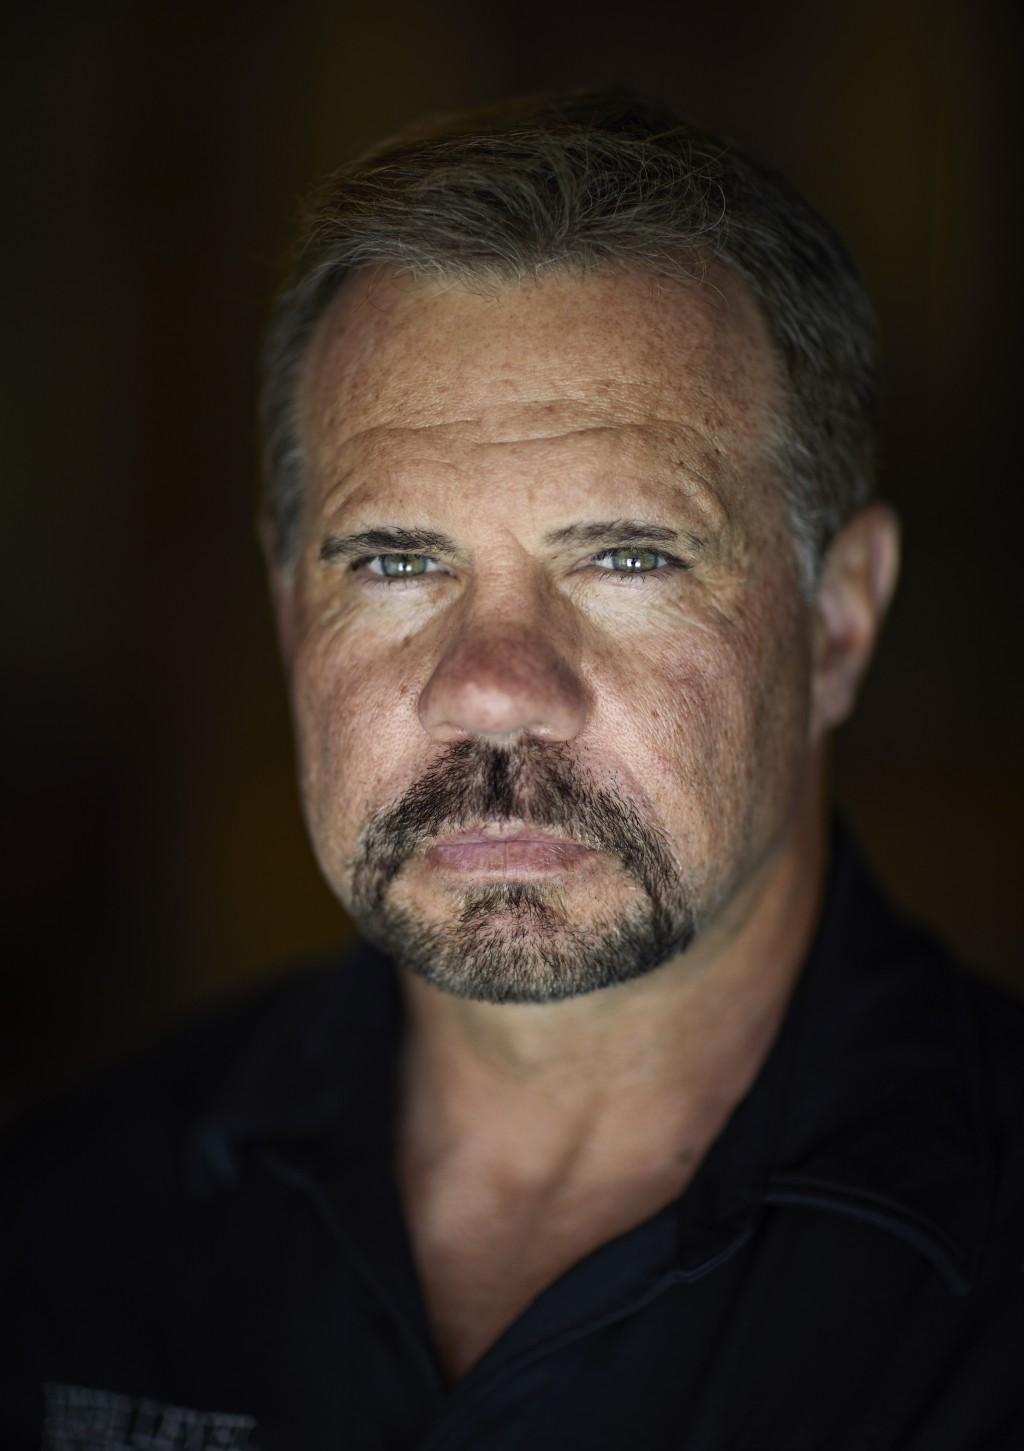 In this April 9, 2019, photo, Grant Whitus poses for a portrait at his home in Lake Havasu City, Ariz. Whitus' marriage fell apart a year after he led